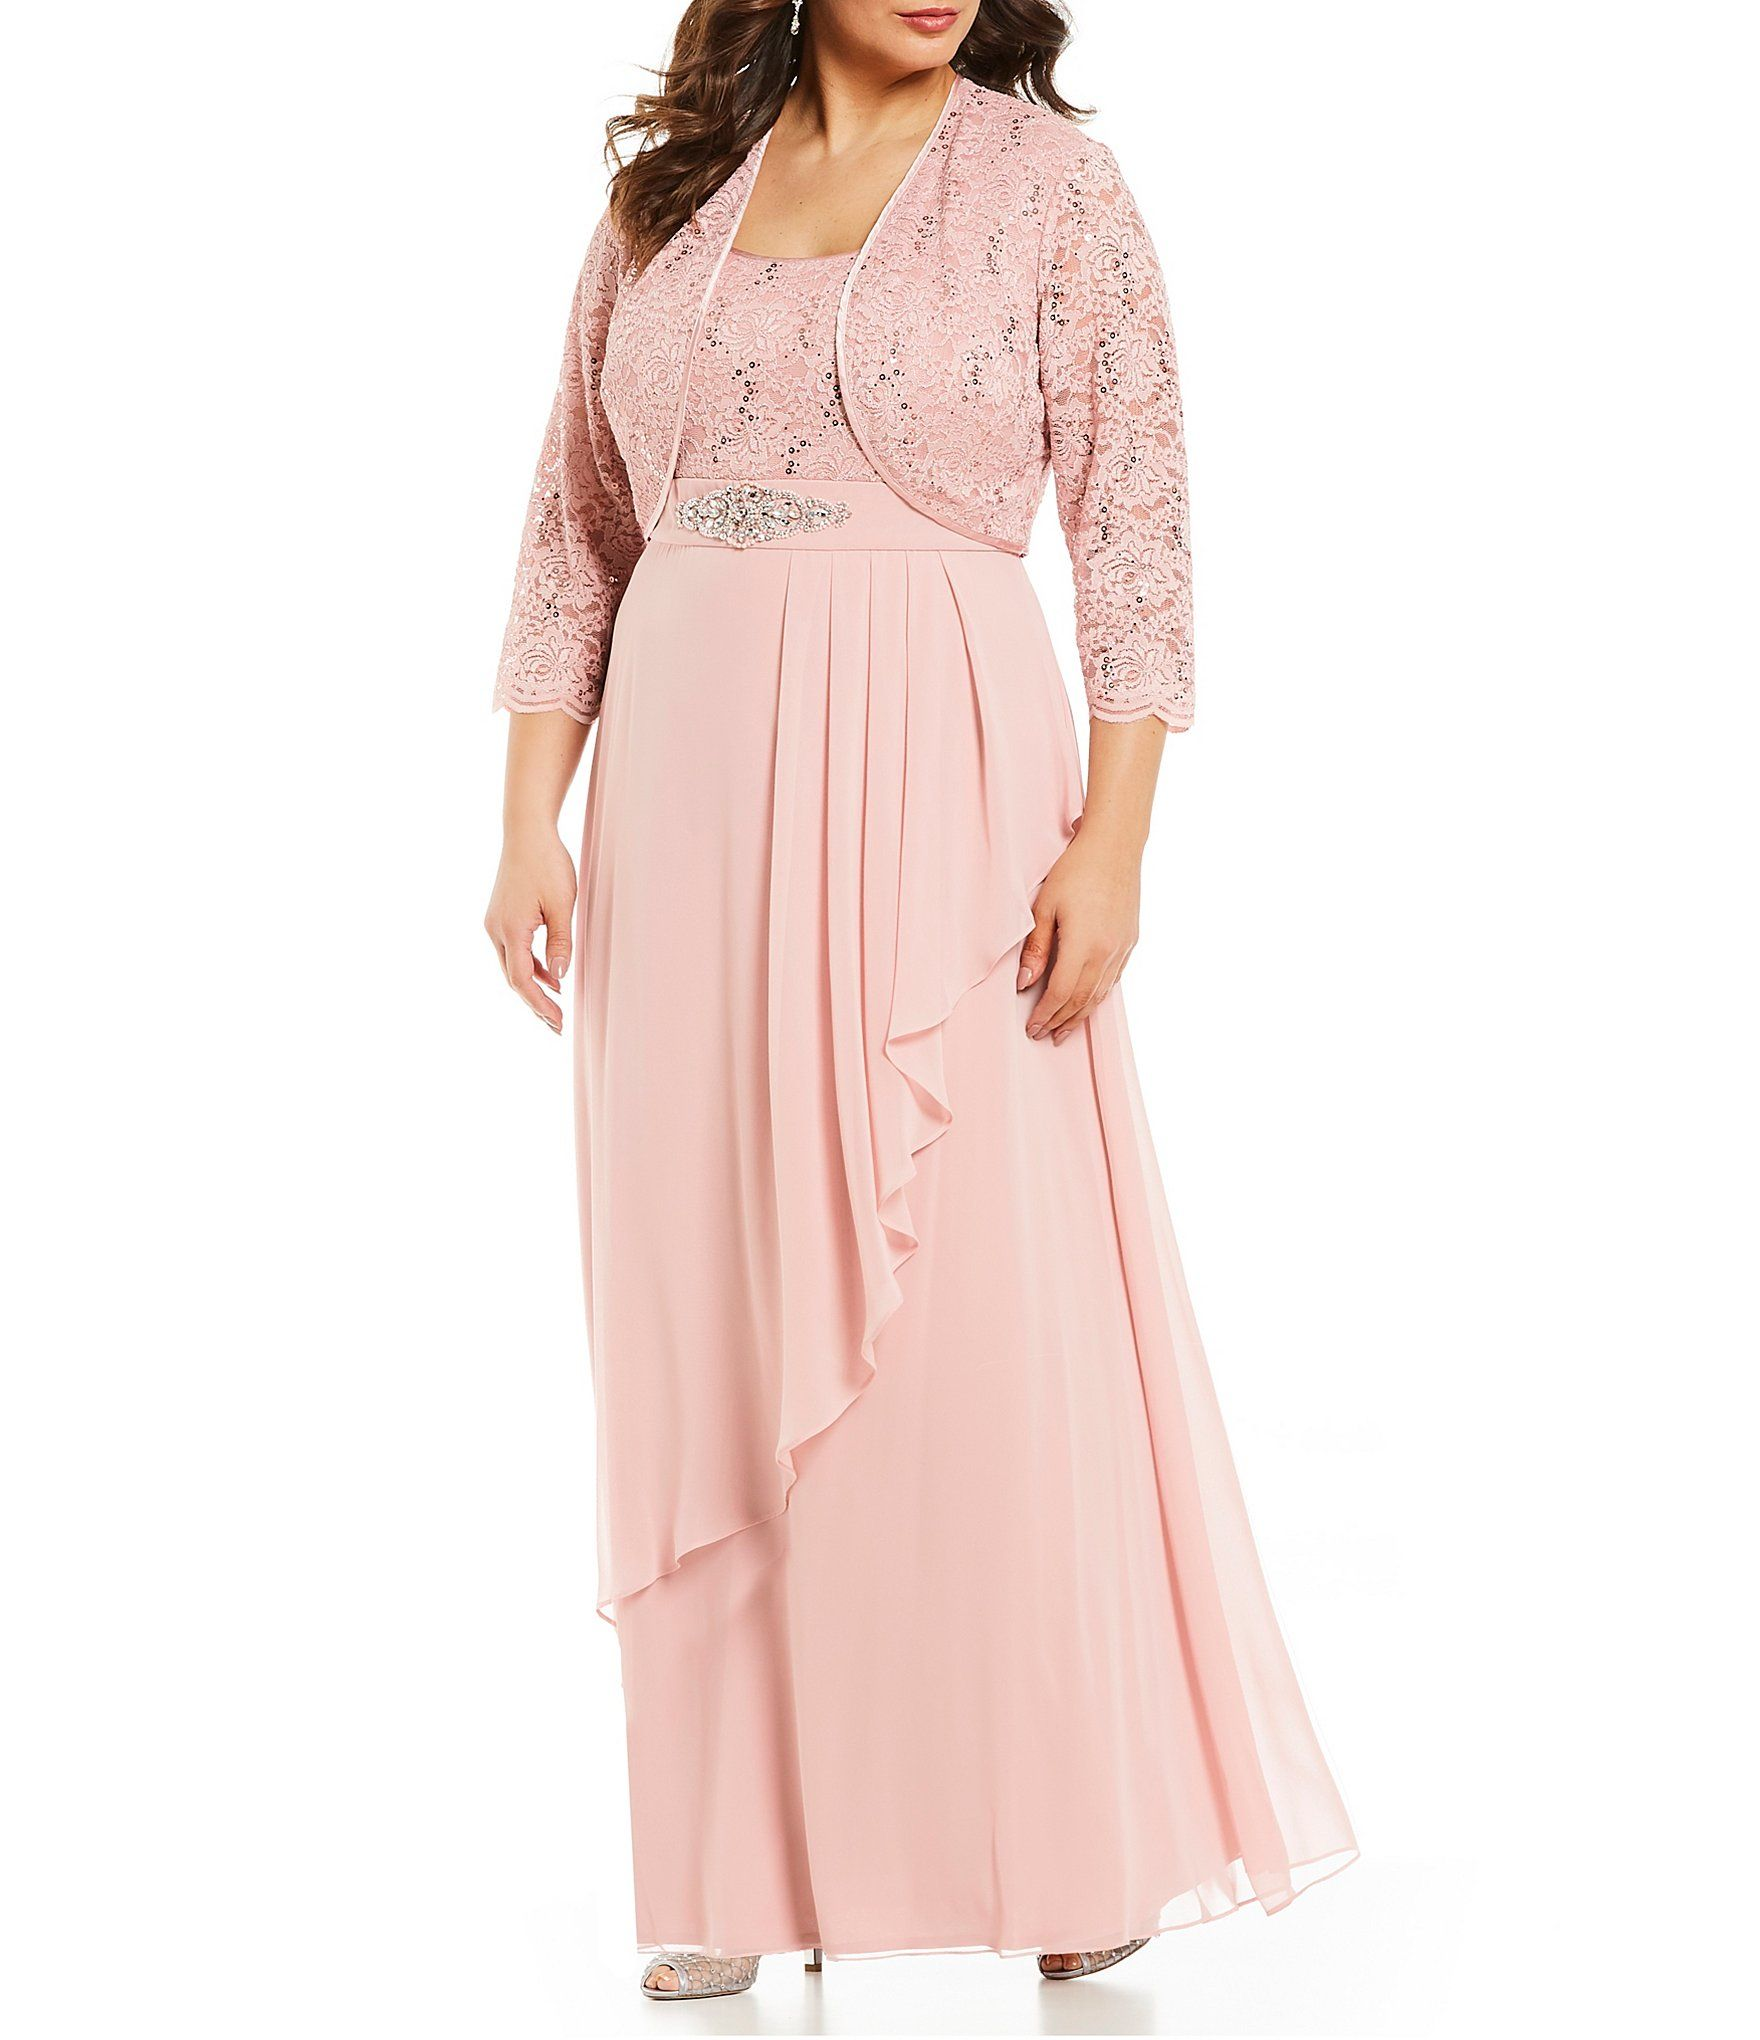 35020c1317c9 Jessica Howard Plus Size Sequin Lace Embellished Waist Drape Front Long  Jacket Dress #Dillards